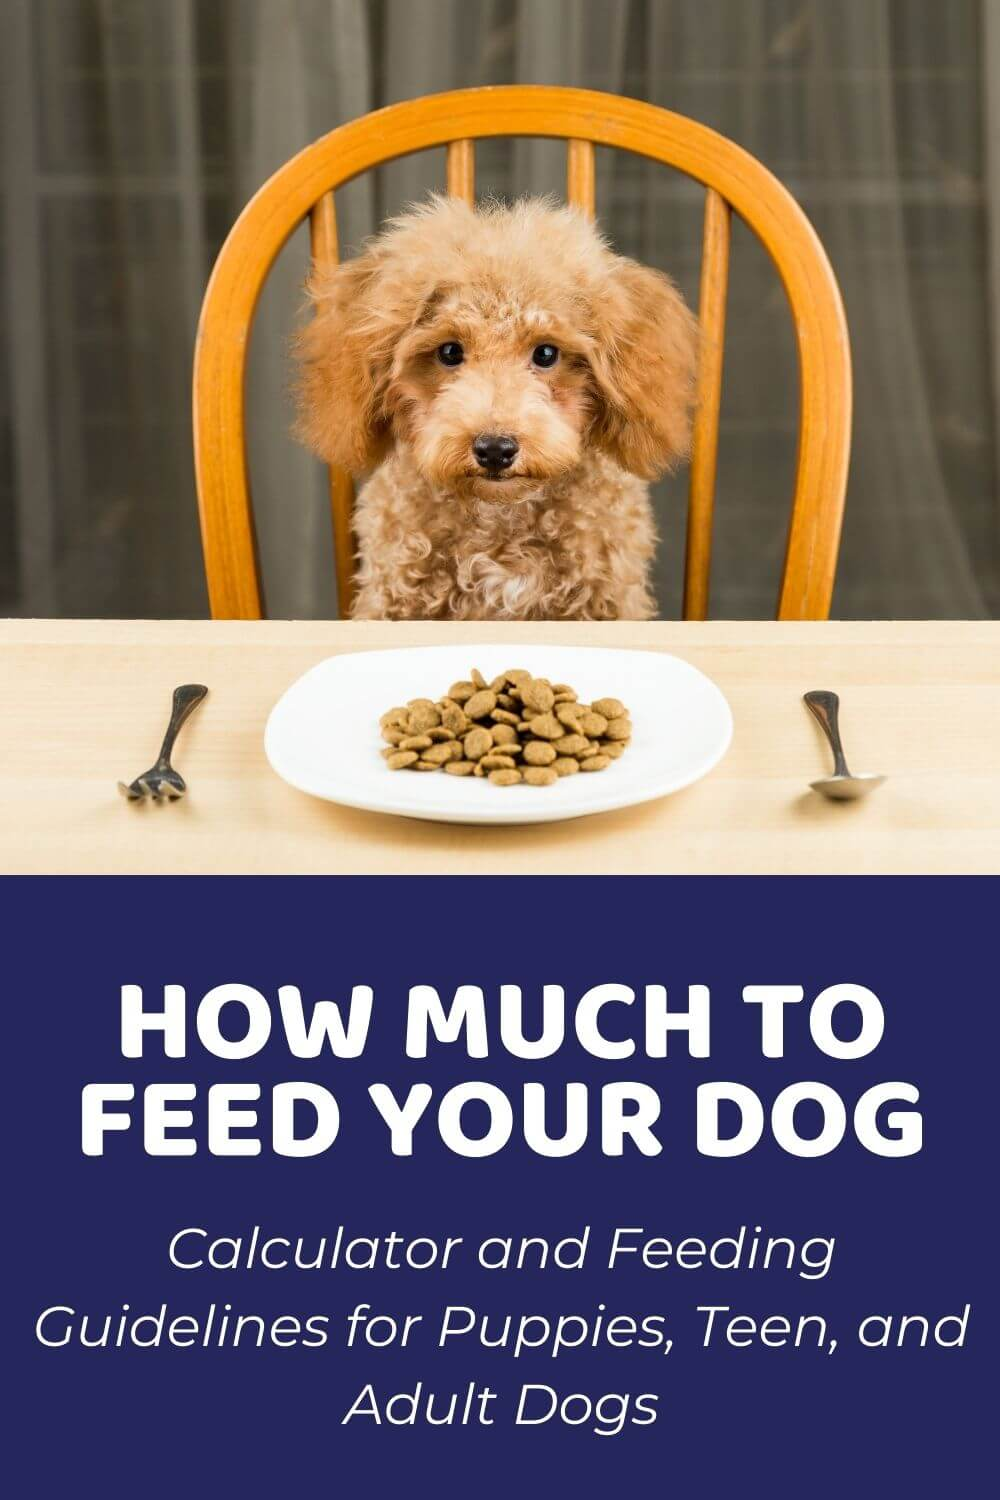 How Much Should I Feed My Dog Calculator And Feeding Guidelines